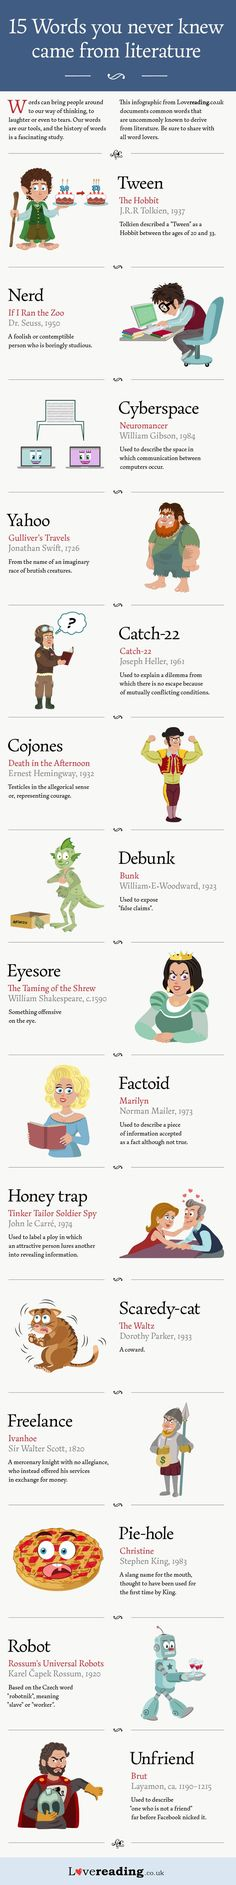 From a 12th century epic poem to a 20th century horror novel, this infographic highlights 15 words that writers have given us.